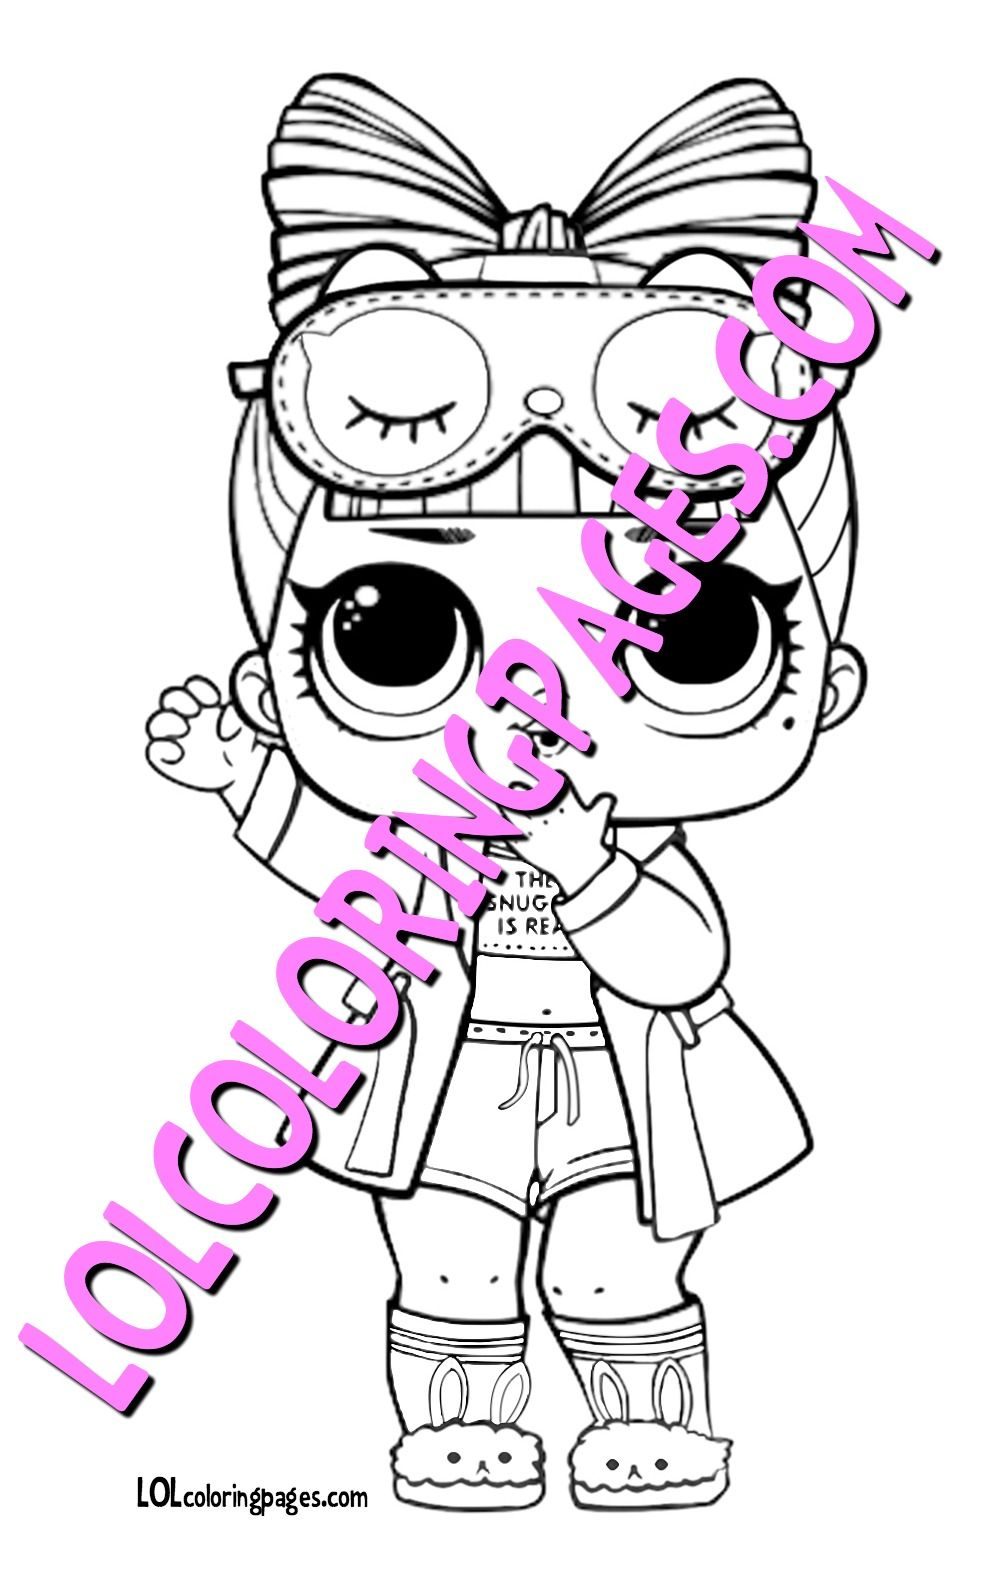 Snuggle Babe Lol Surprise Doll Free Coloring Page To Print Come